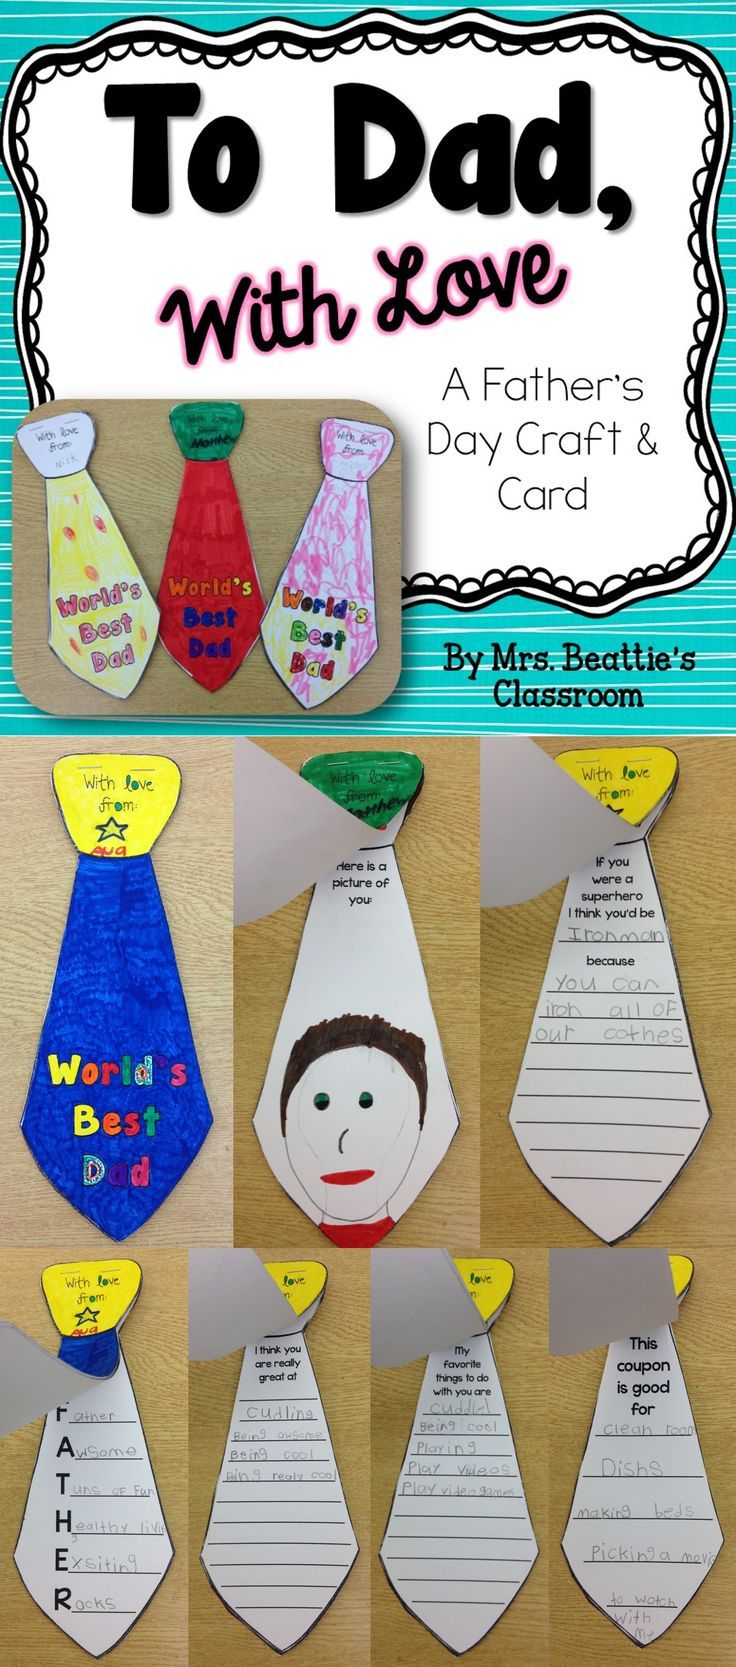 Give Dad a tie he won't pretend to love! He'll cherish this one forever! To Dad, With Love ~ A Father's Day Card and Coupon Book from Mrs. Beattie's Classroom